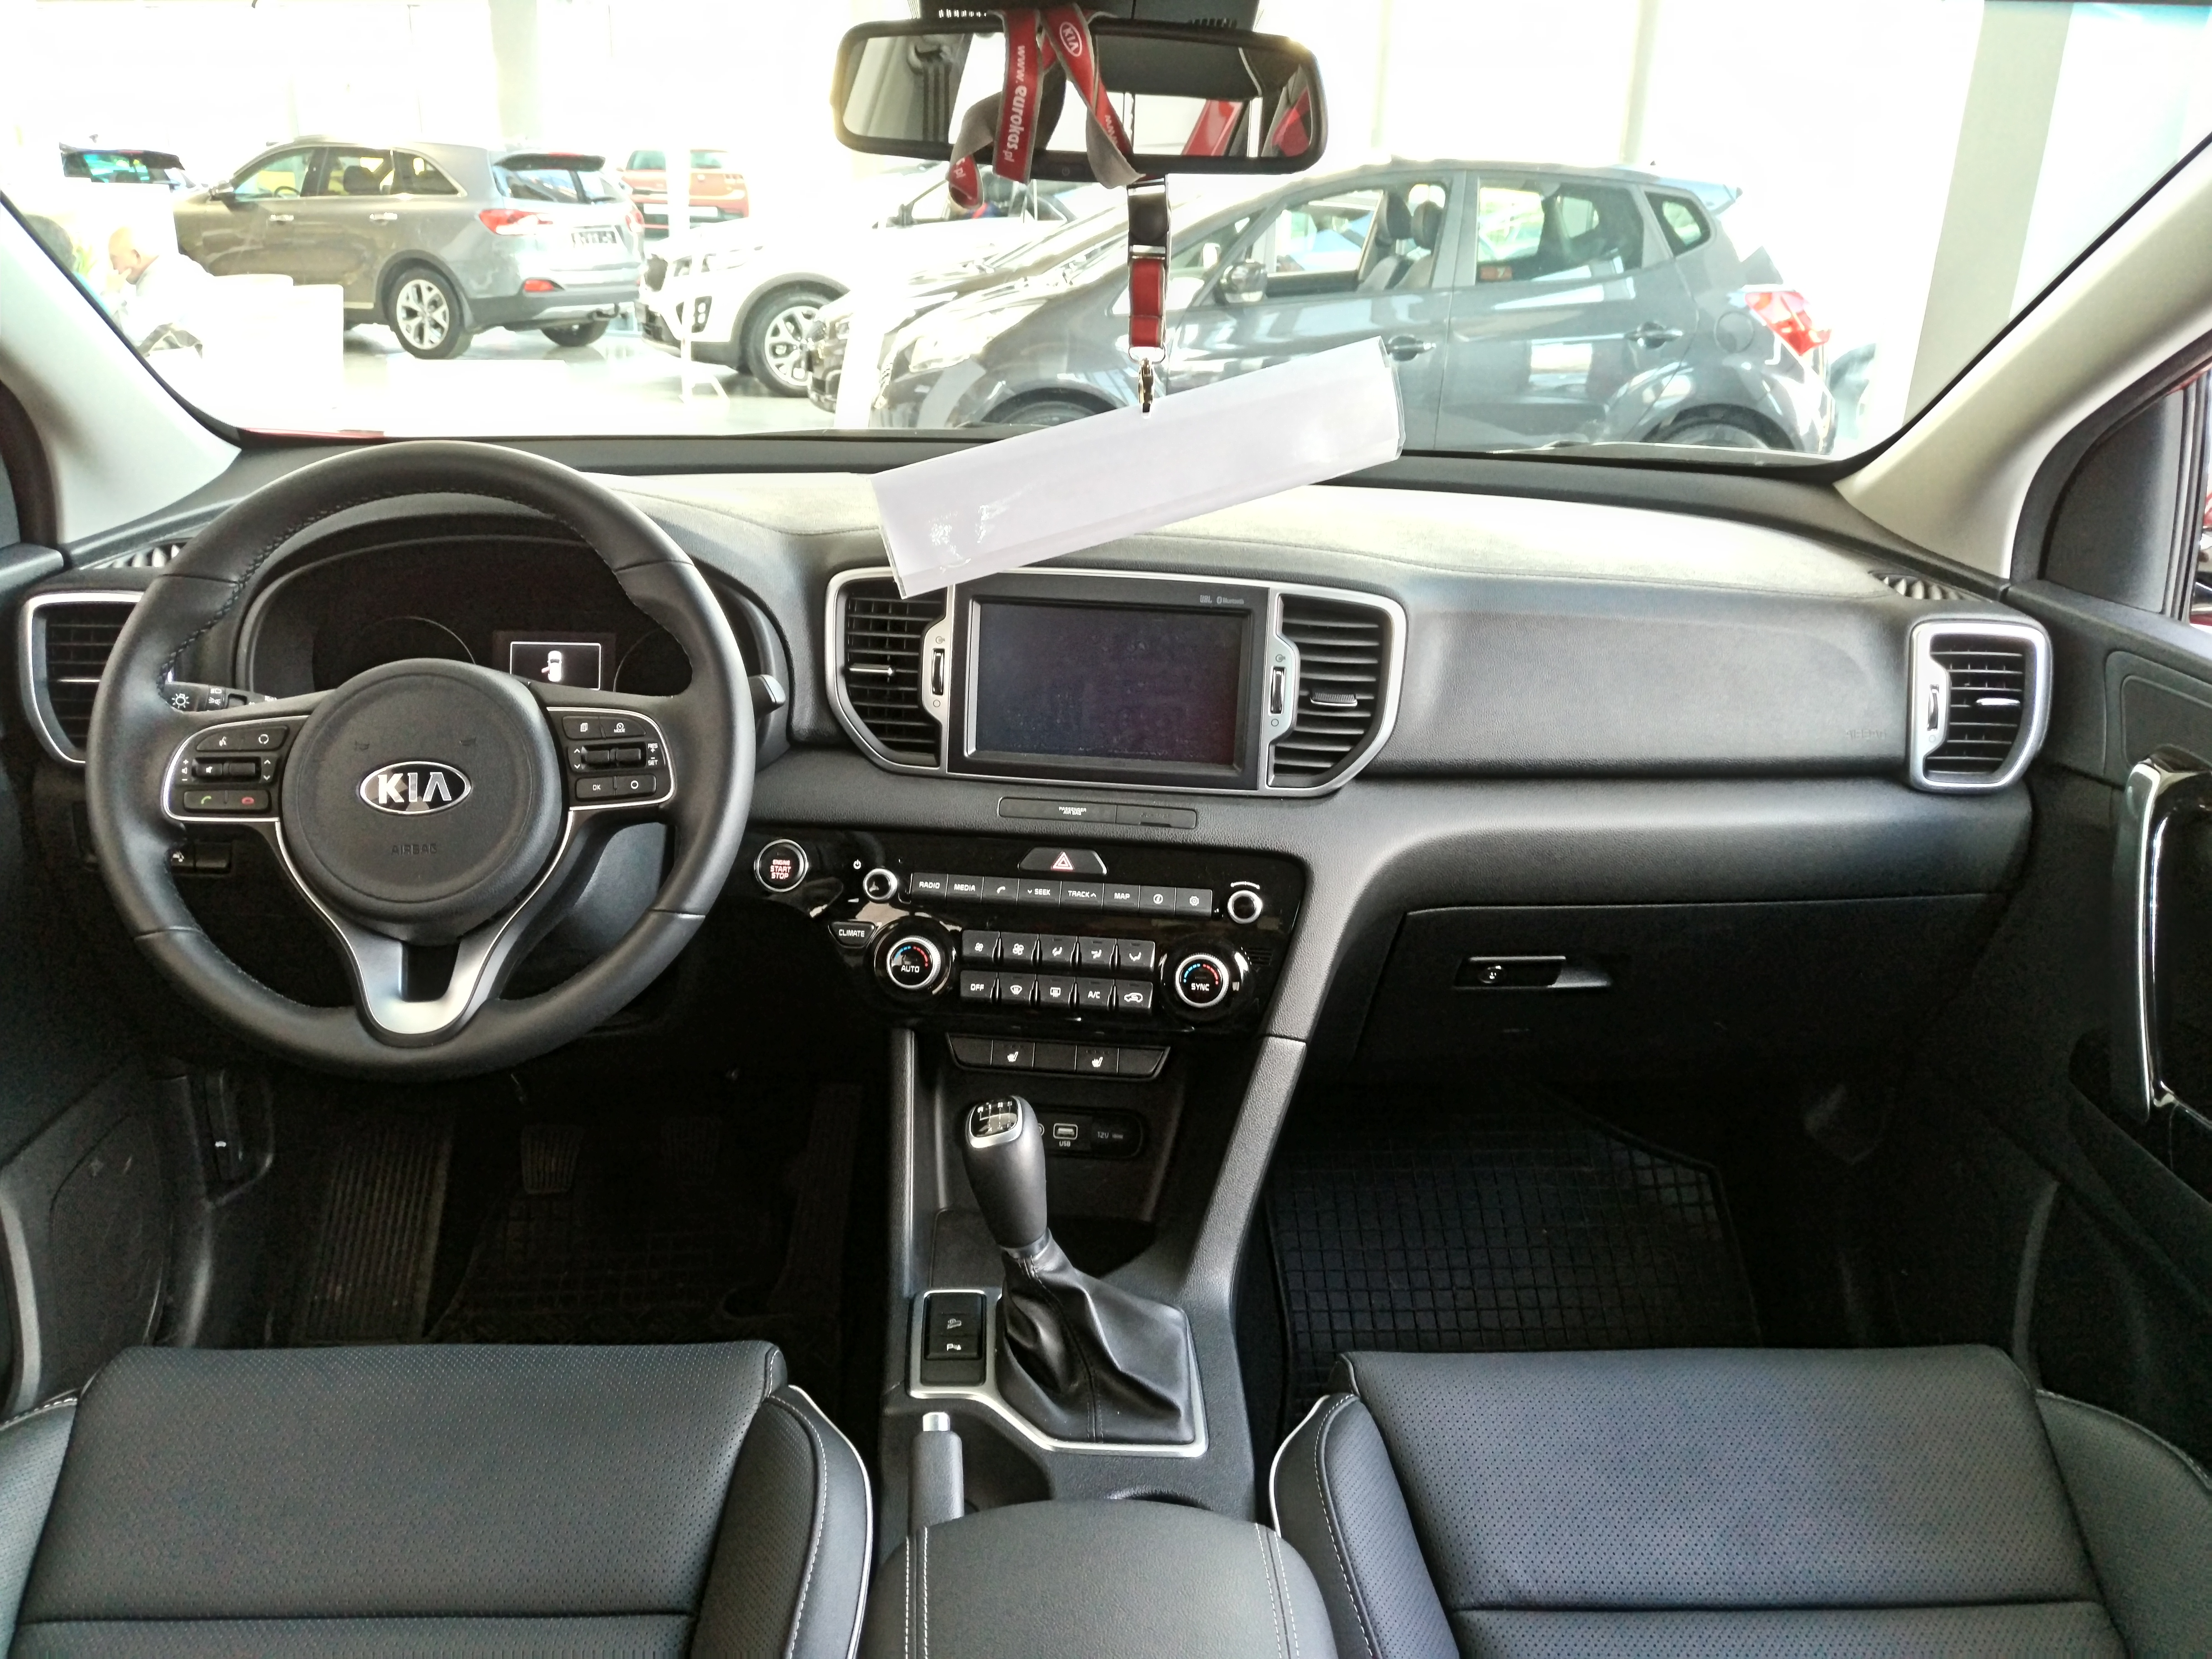 File:Kia Sportage (QL) interior.jpg - Wikimedia Commons